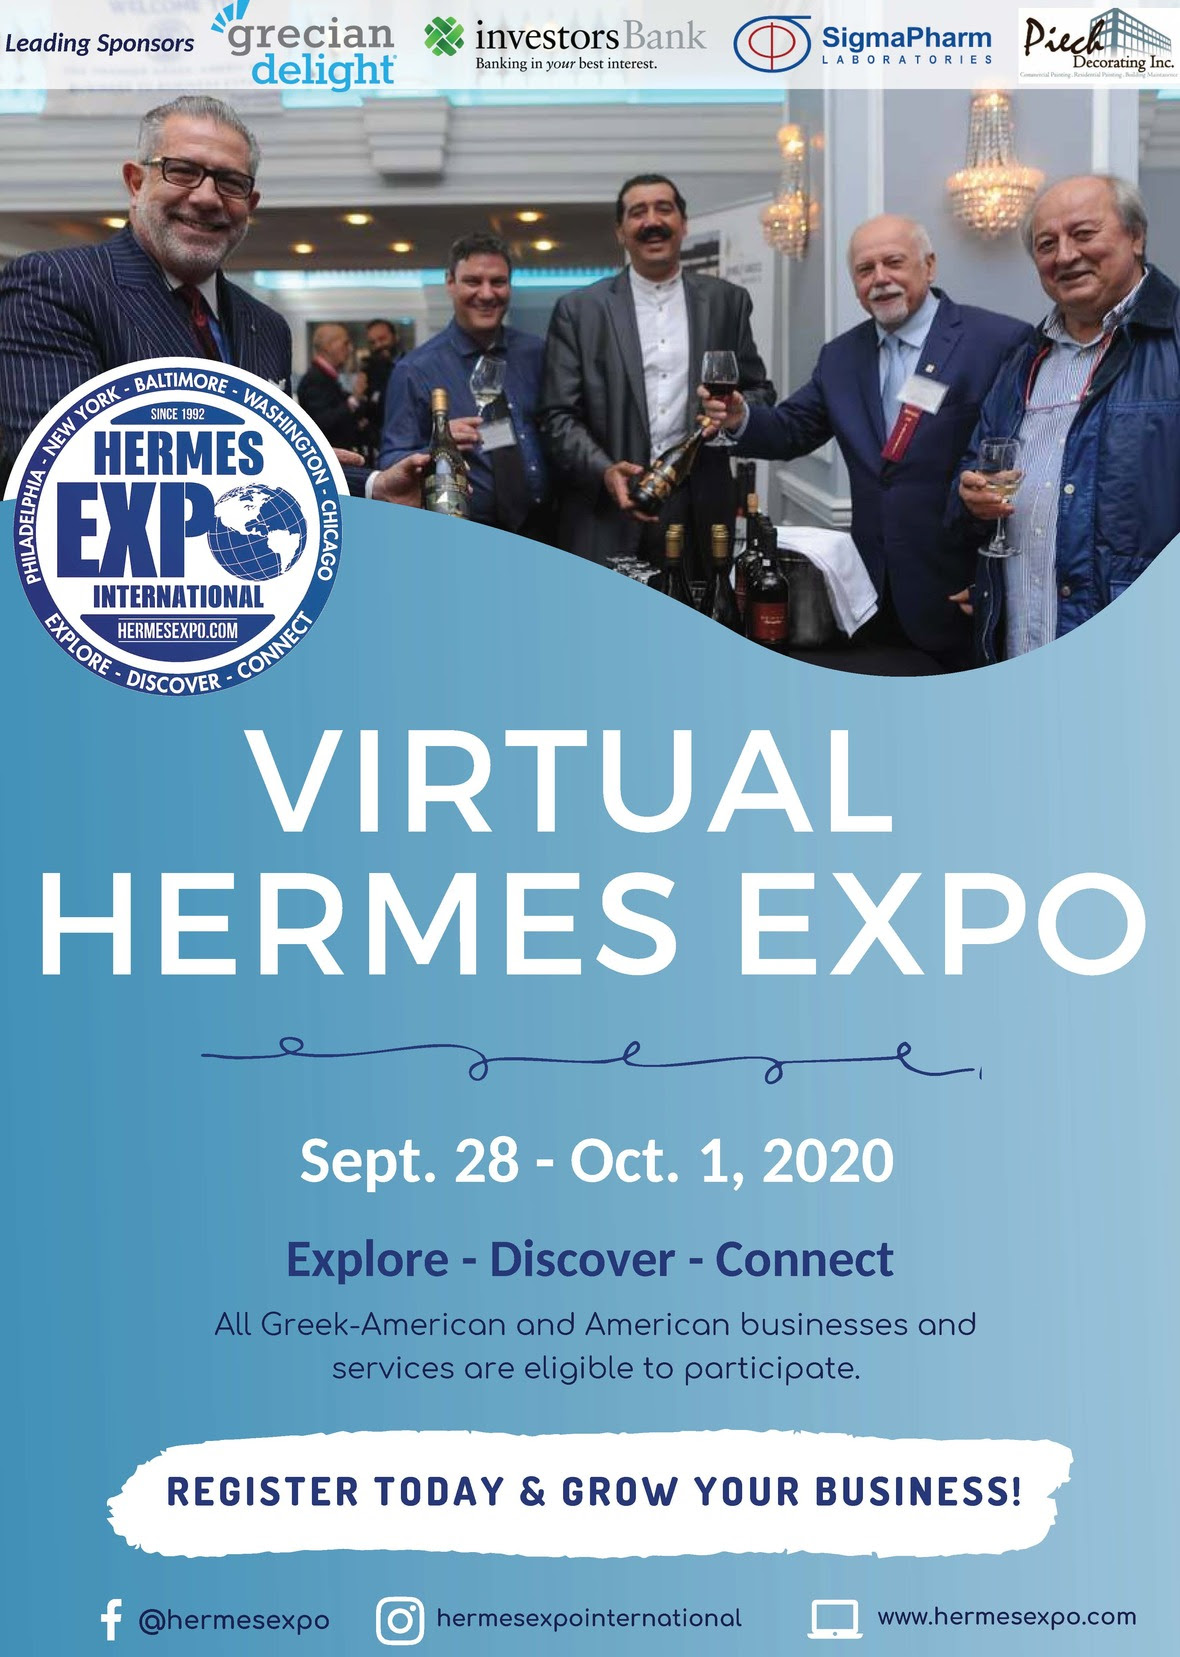 Virtual Hermes Expo 2020